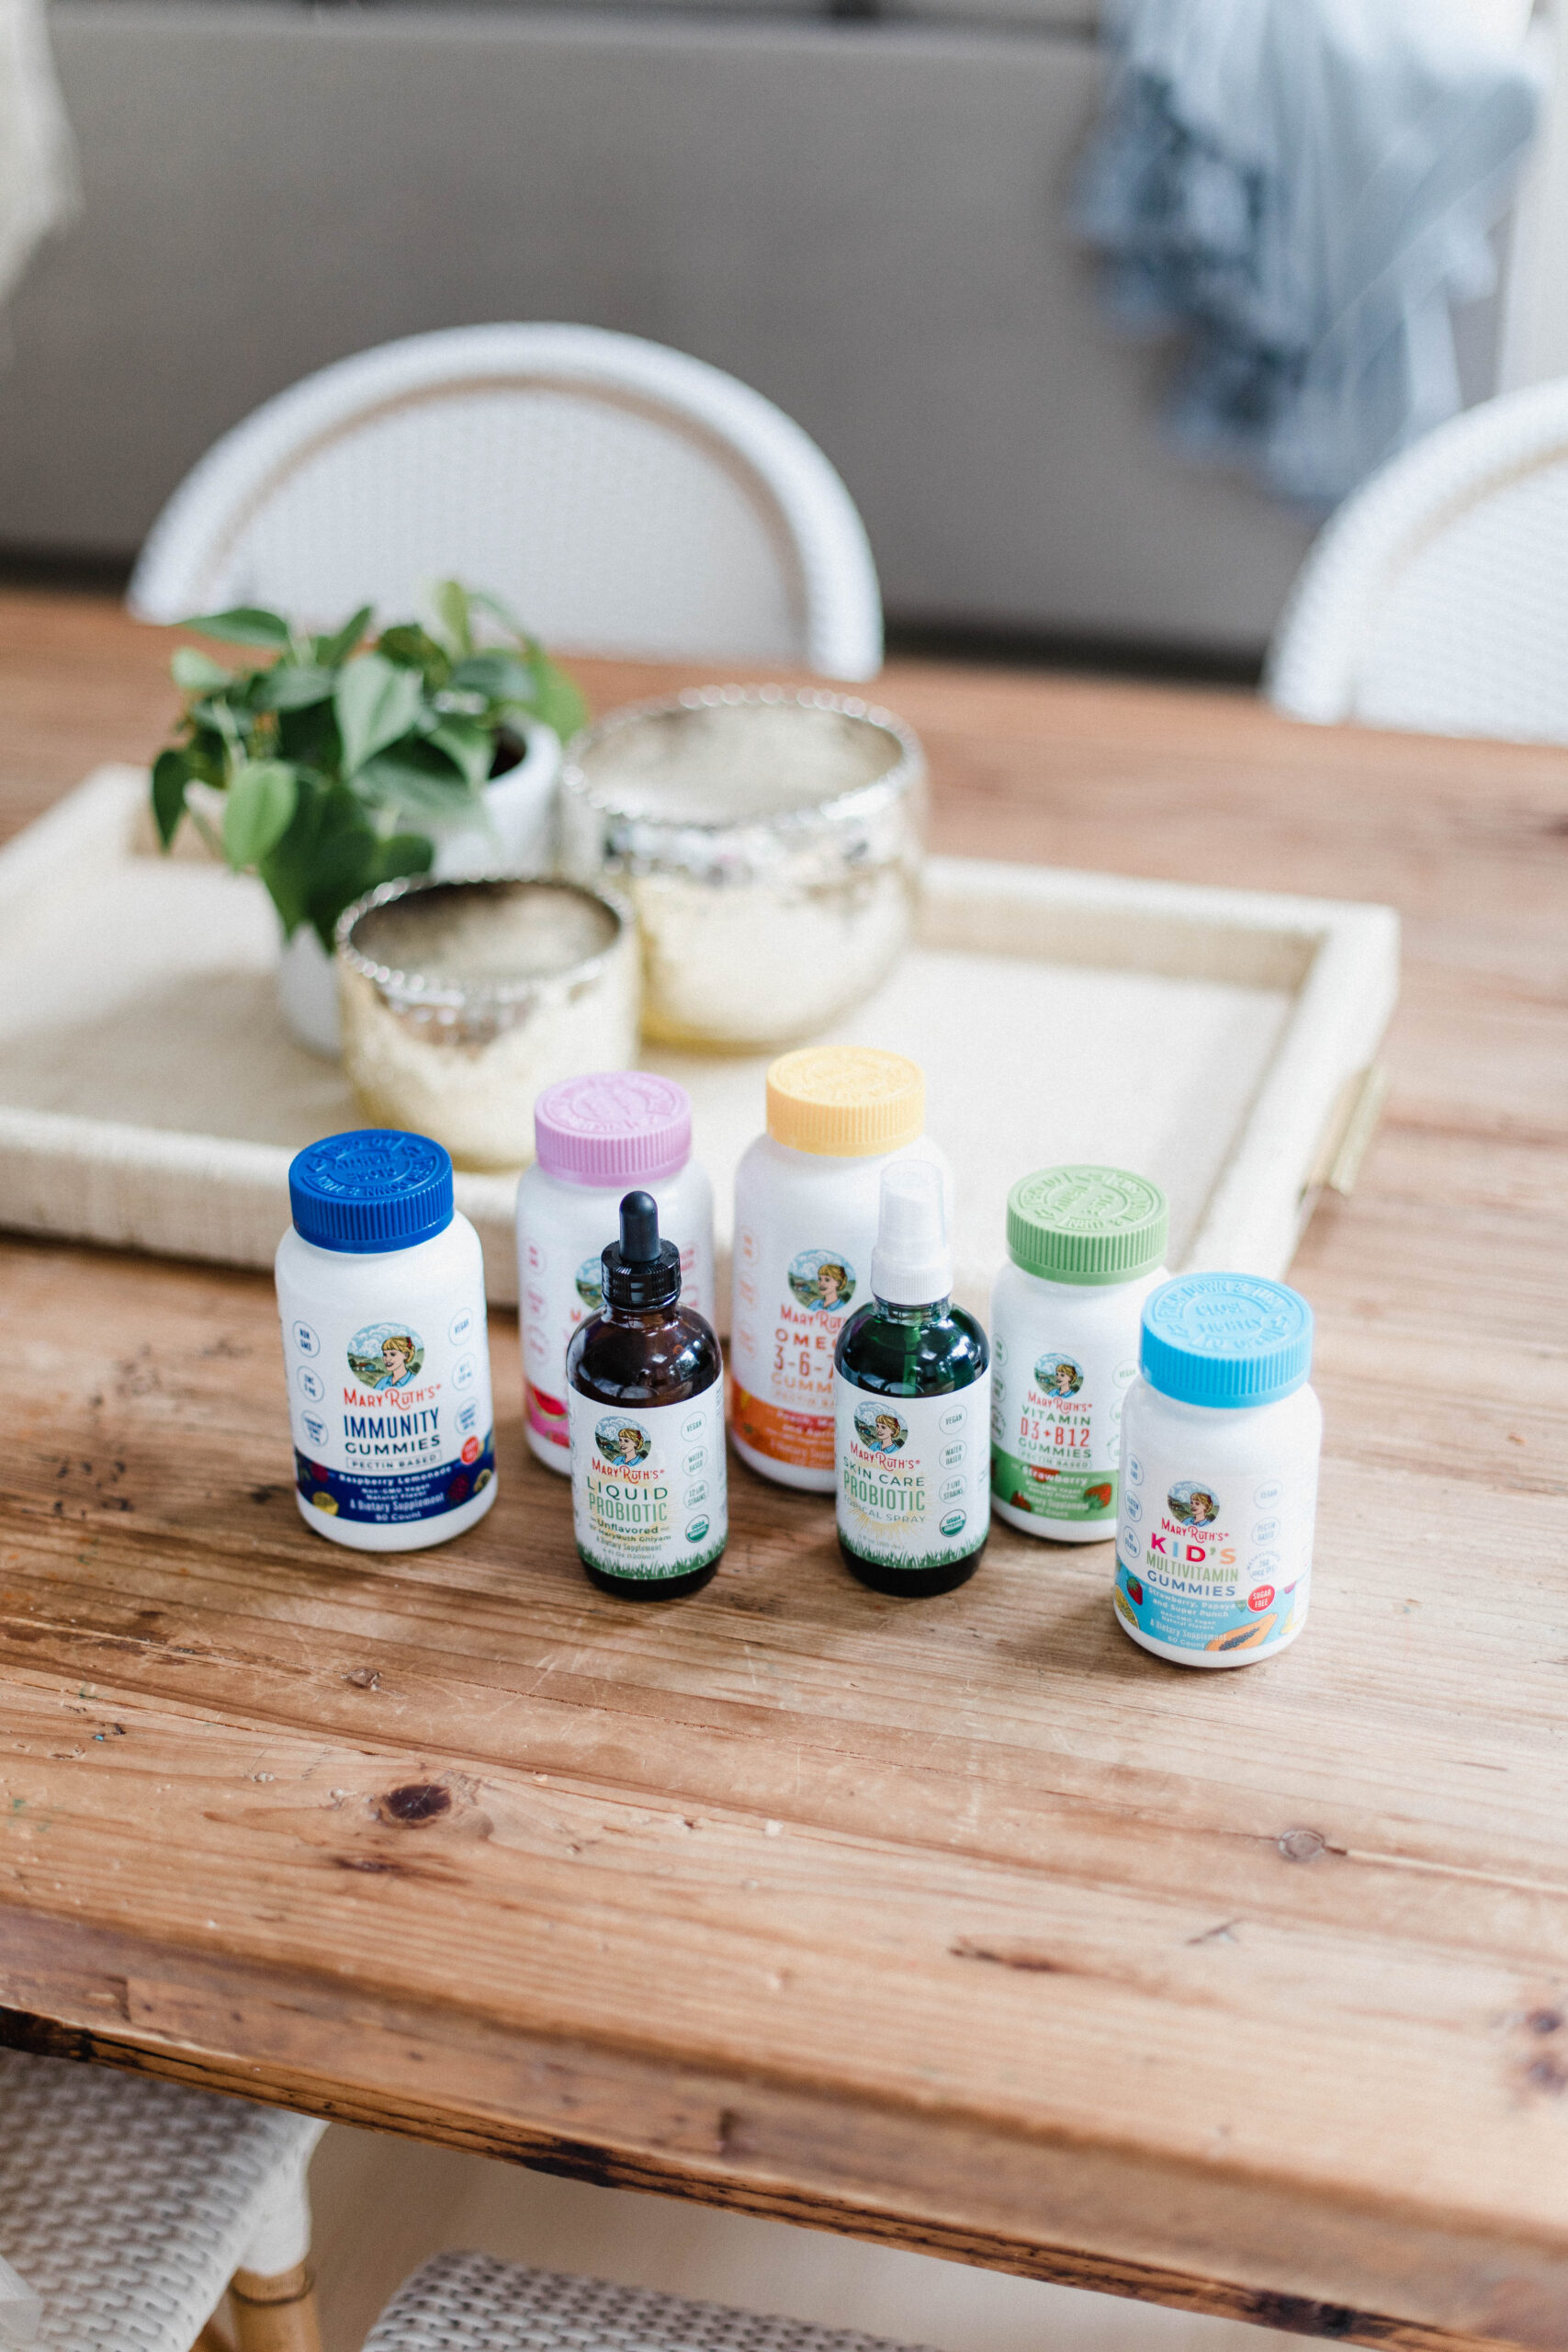 Looking for great supplements? Connecticut life and style blogger Lauren McBride shares MaryRuth Organics supplements, plus a discount code.